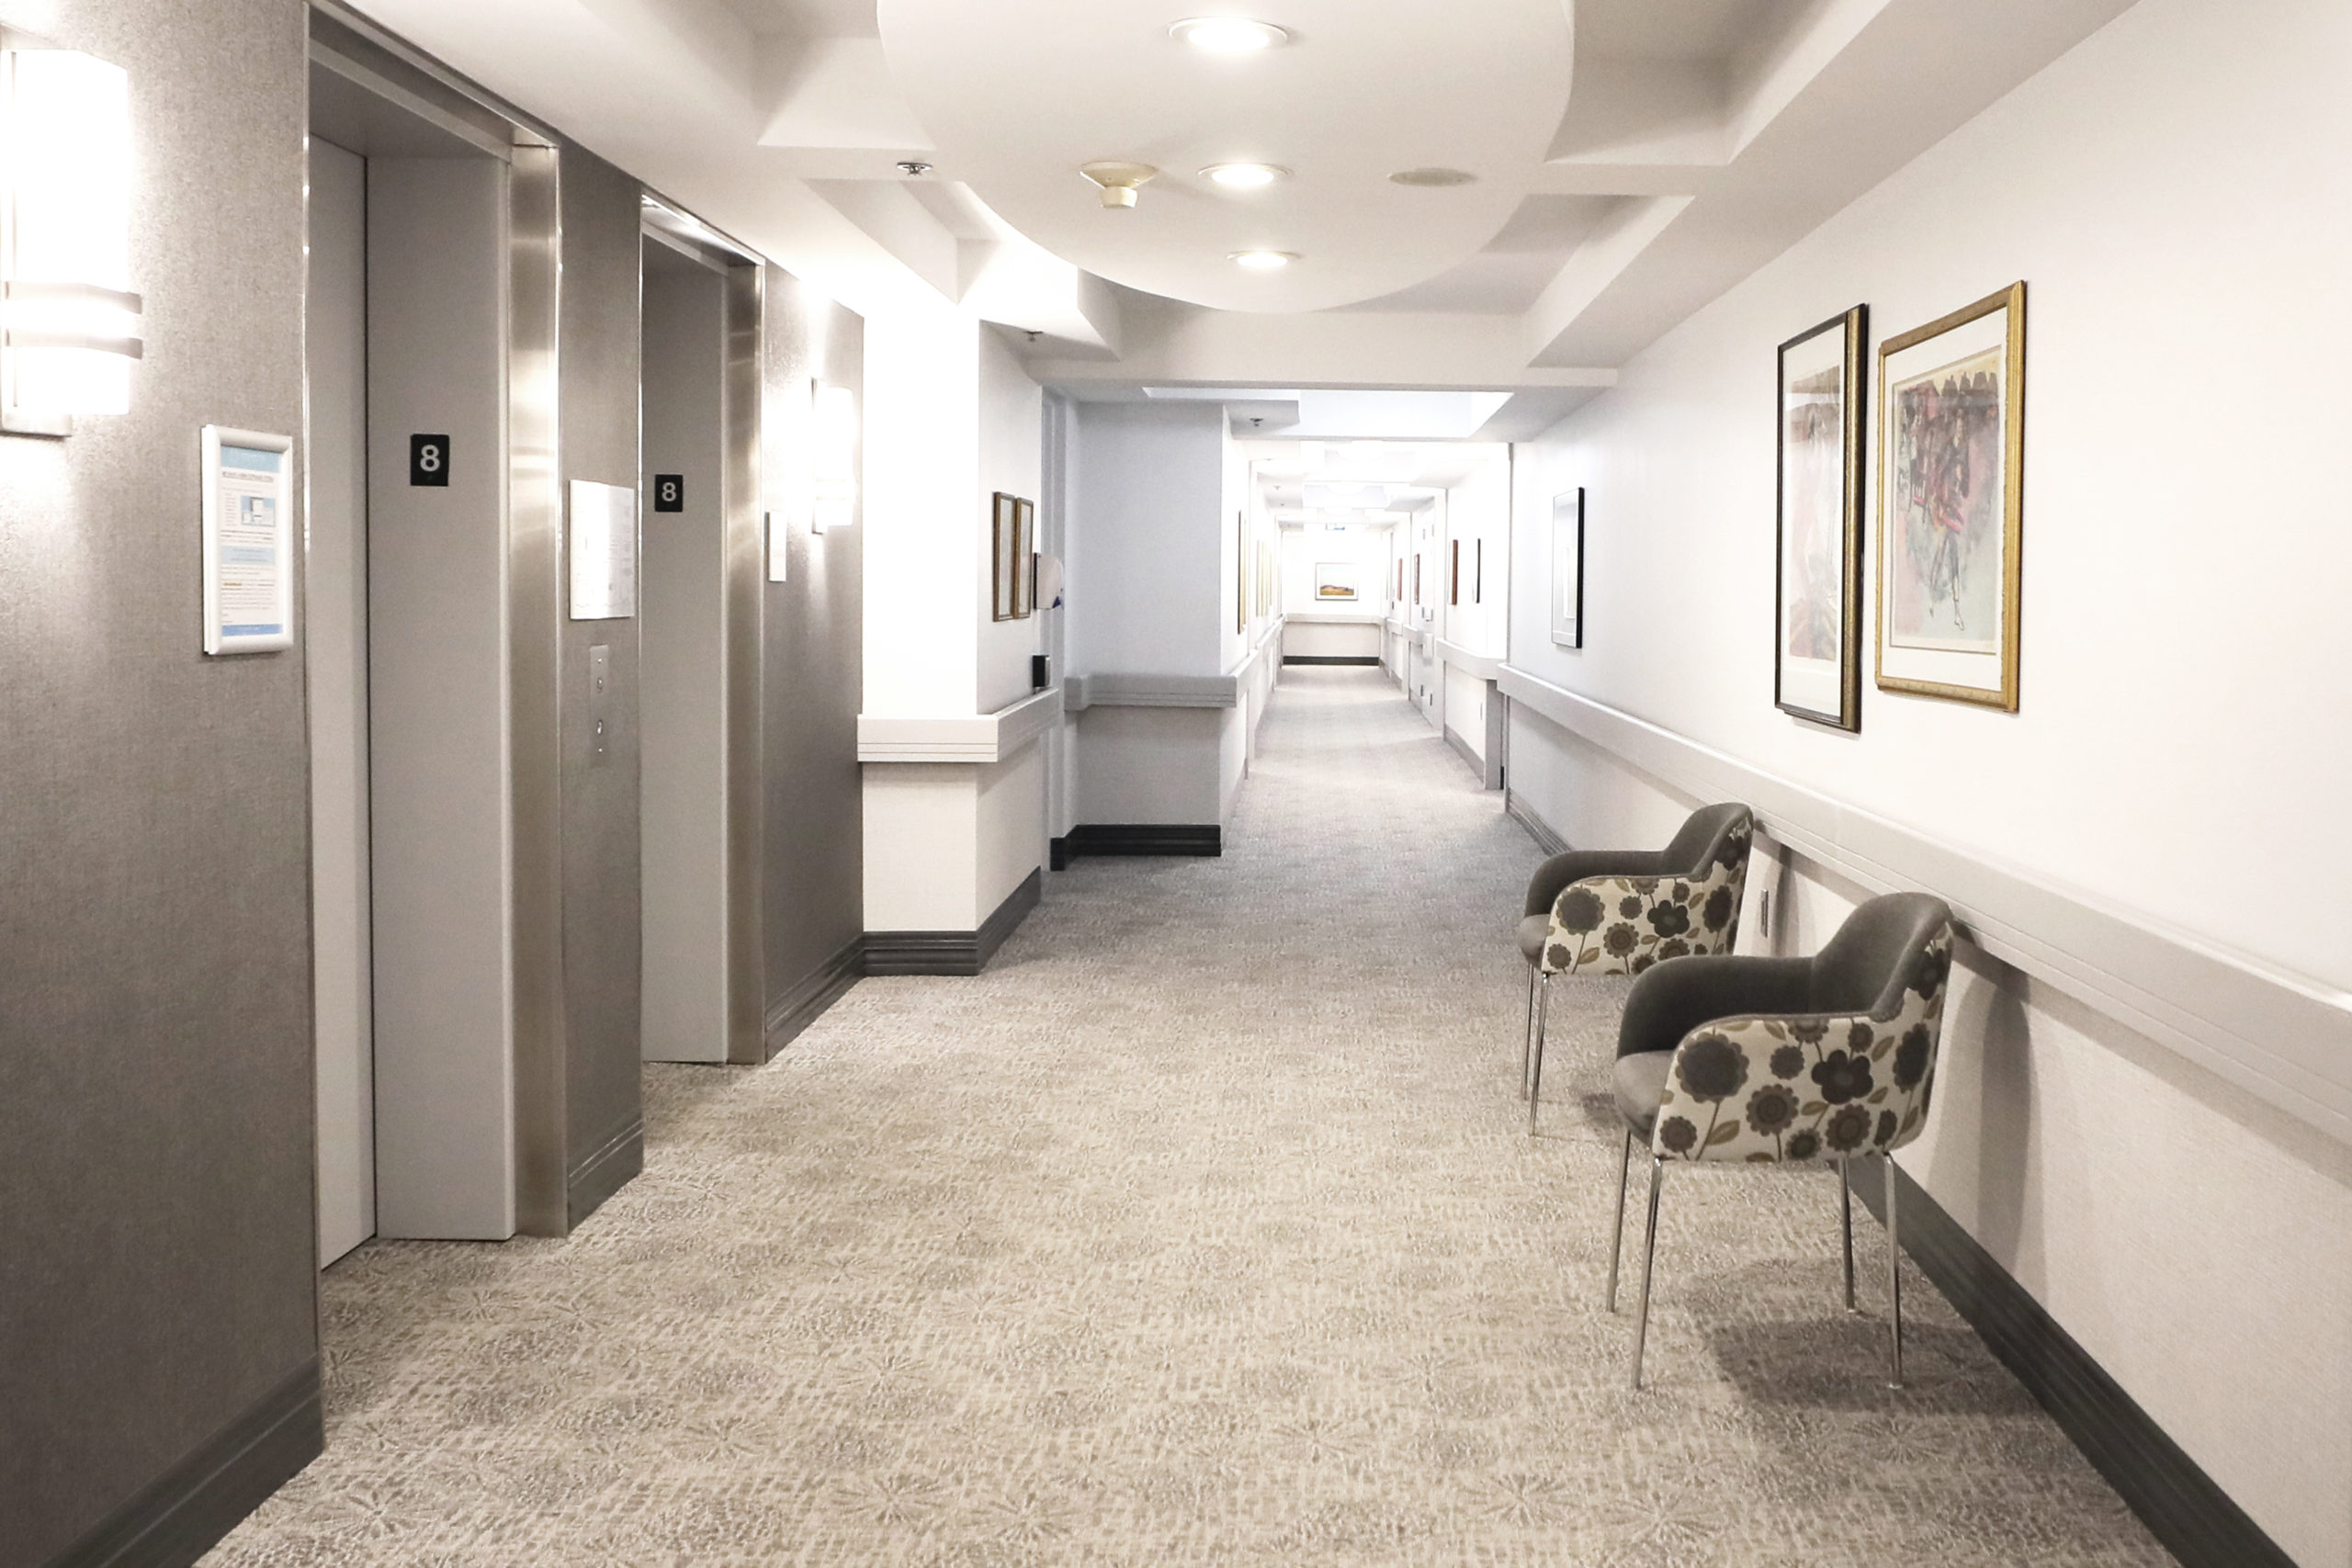 hallway with elevators